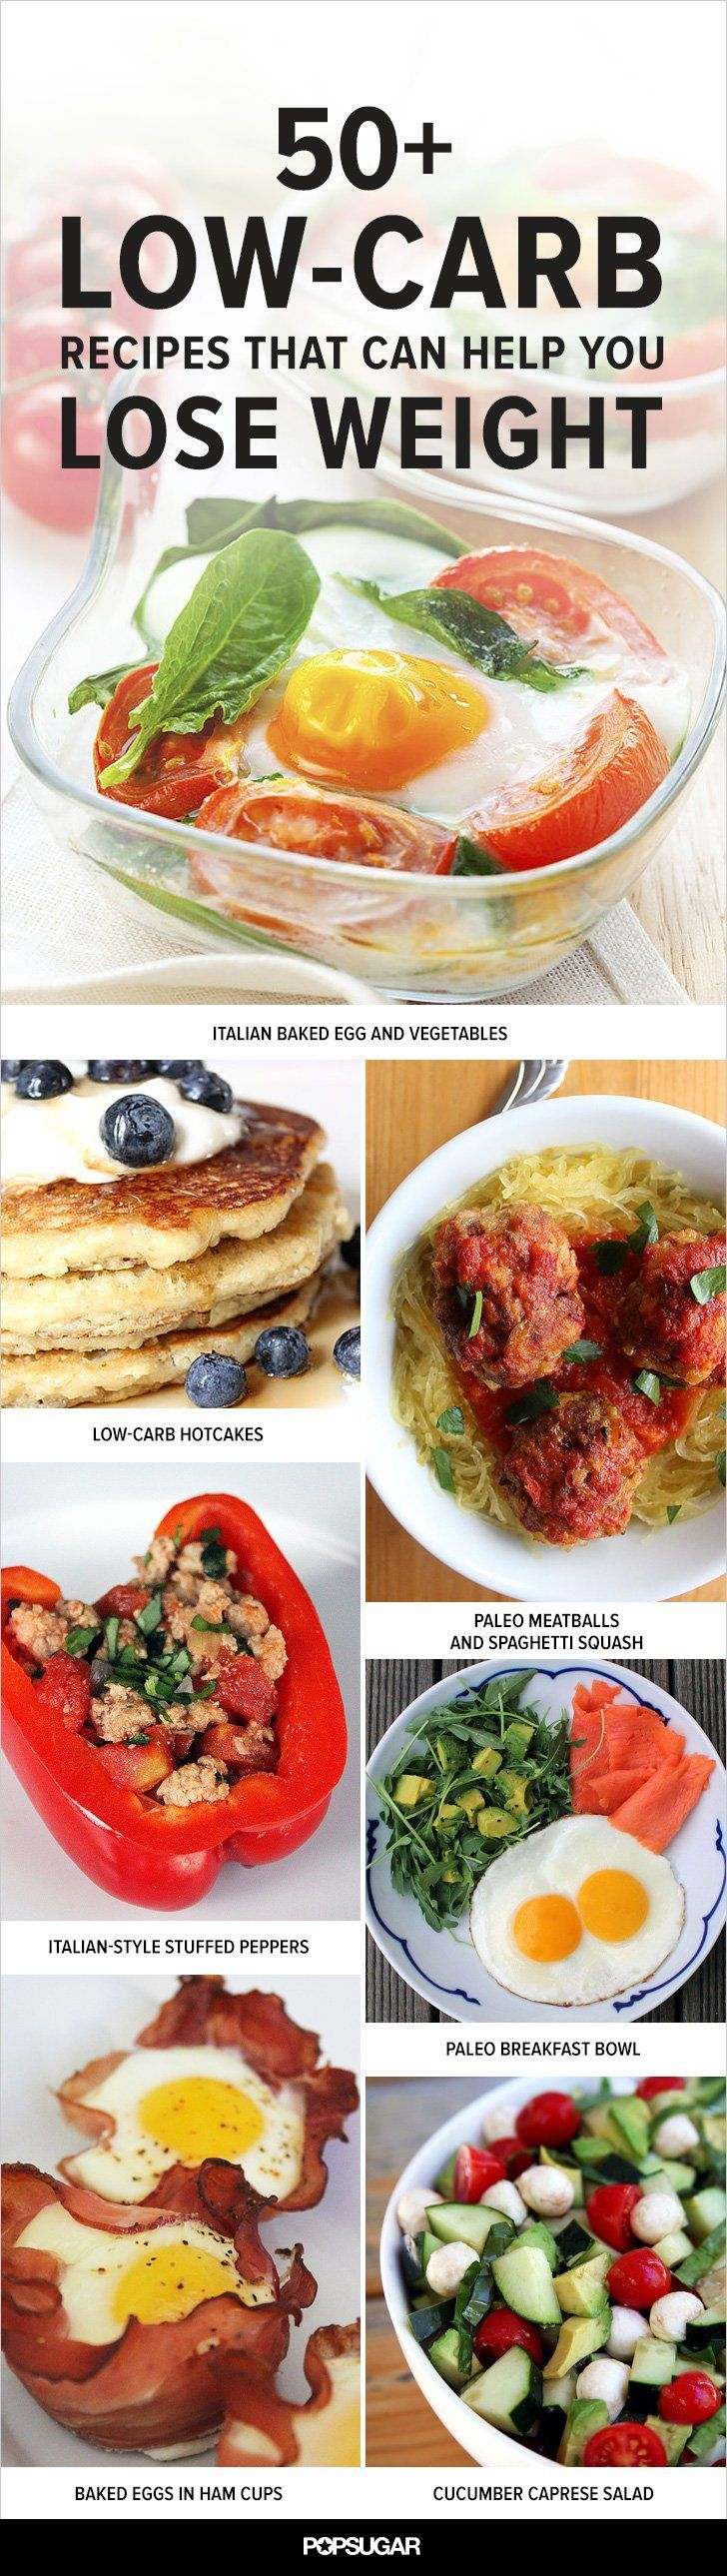 (desparation recipes, read through and alter as needed for either S or E) 50+ Delicious Recipes That Effortlessly Cut Carbs